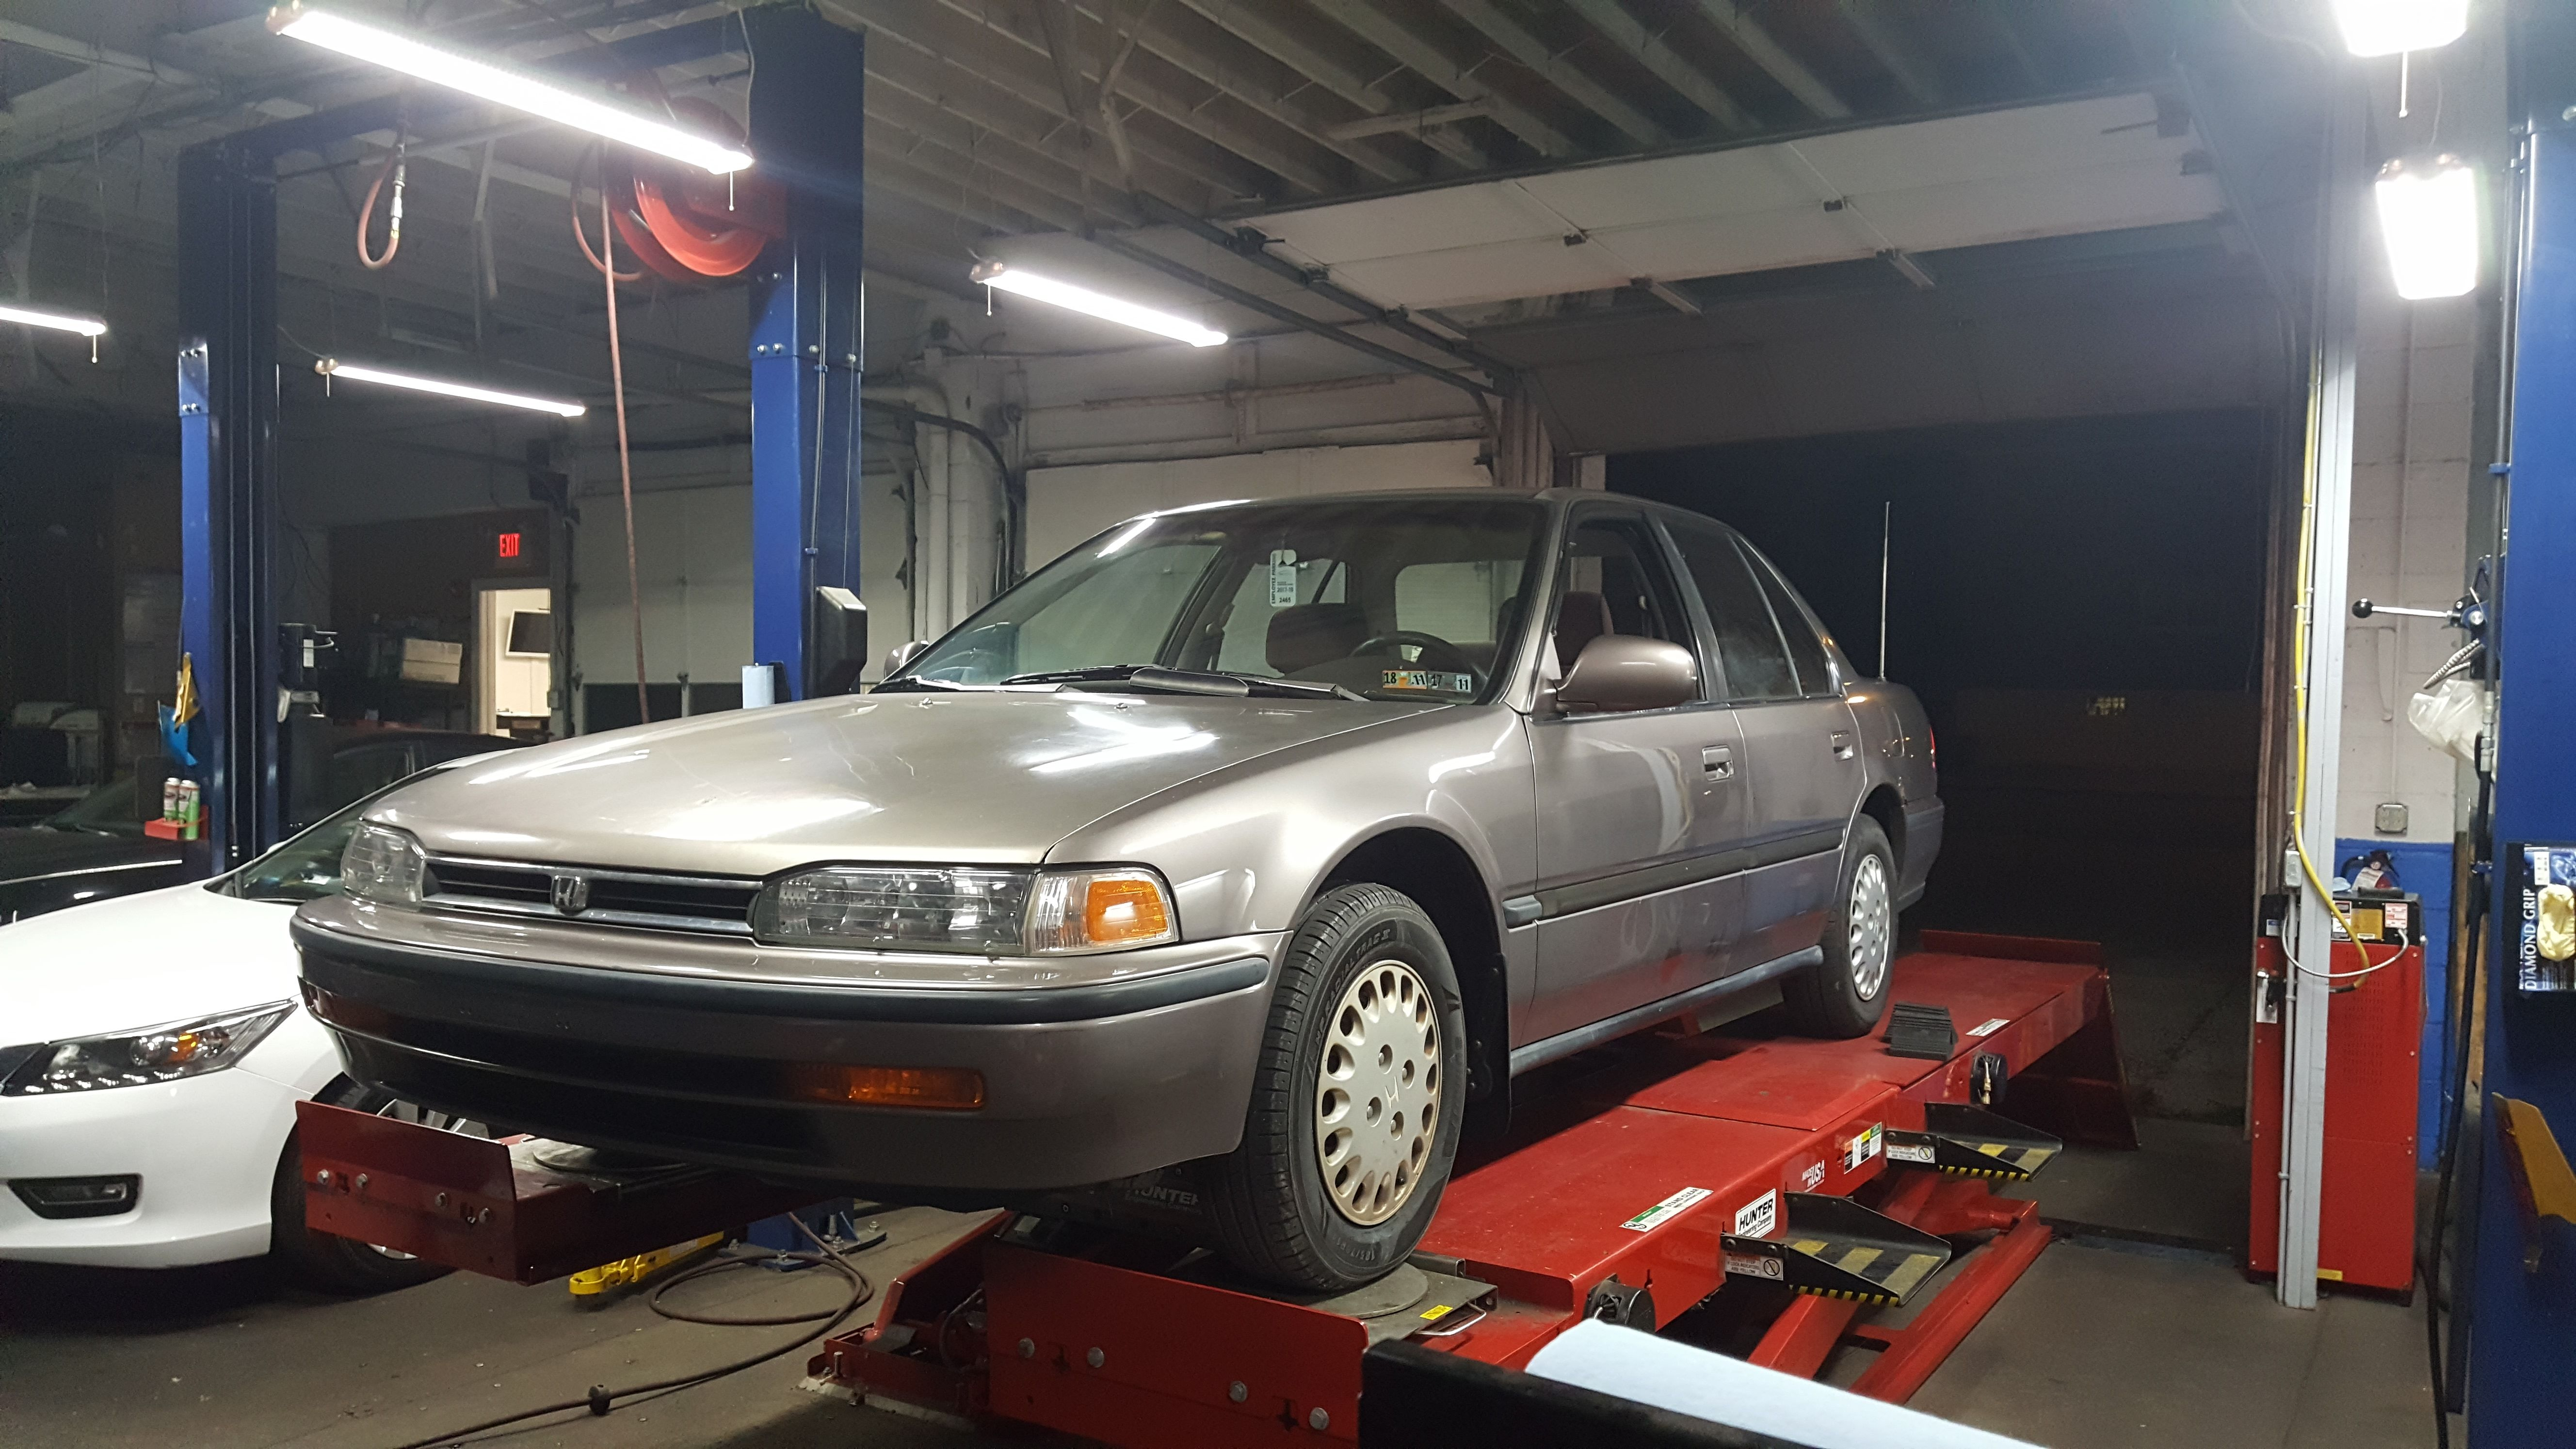 New Or Old Honda Car Is Able To Service Or Repair Your Honda And